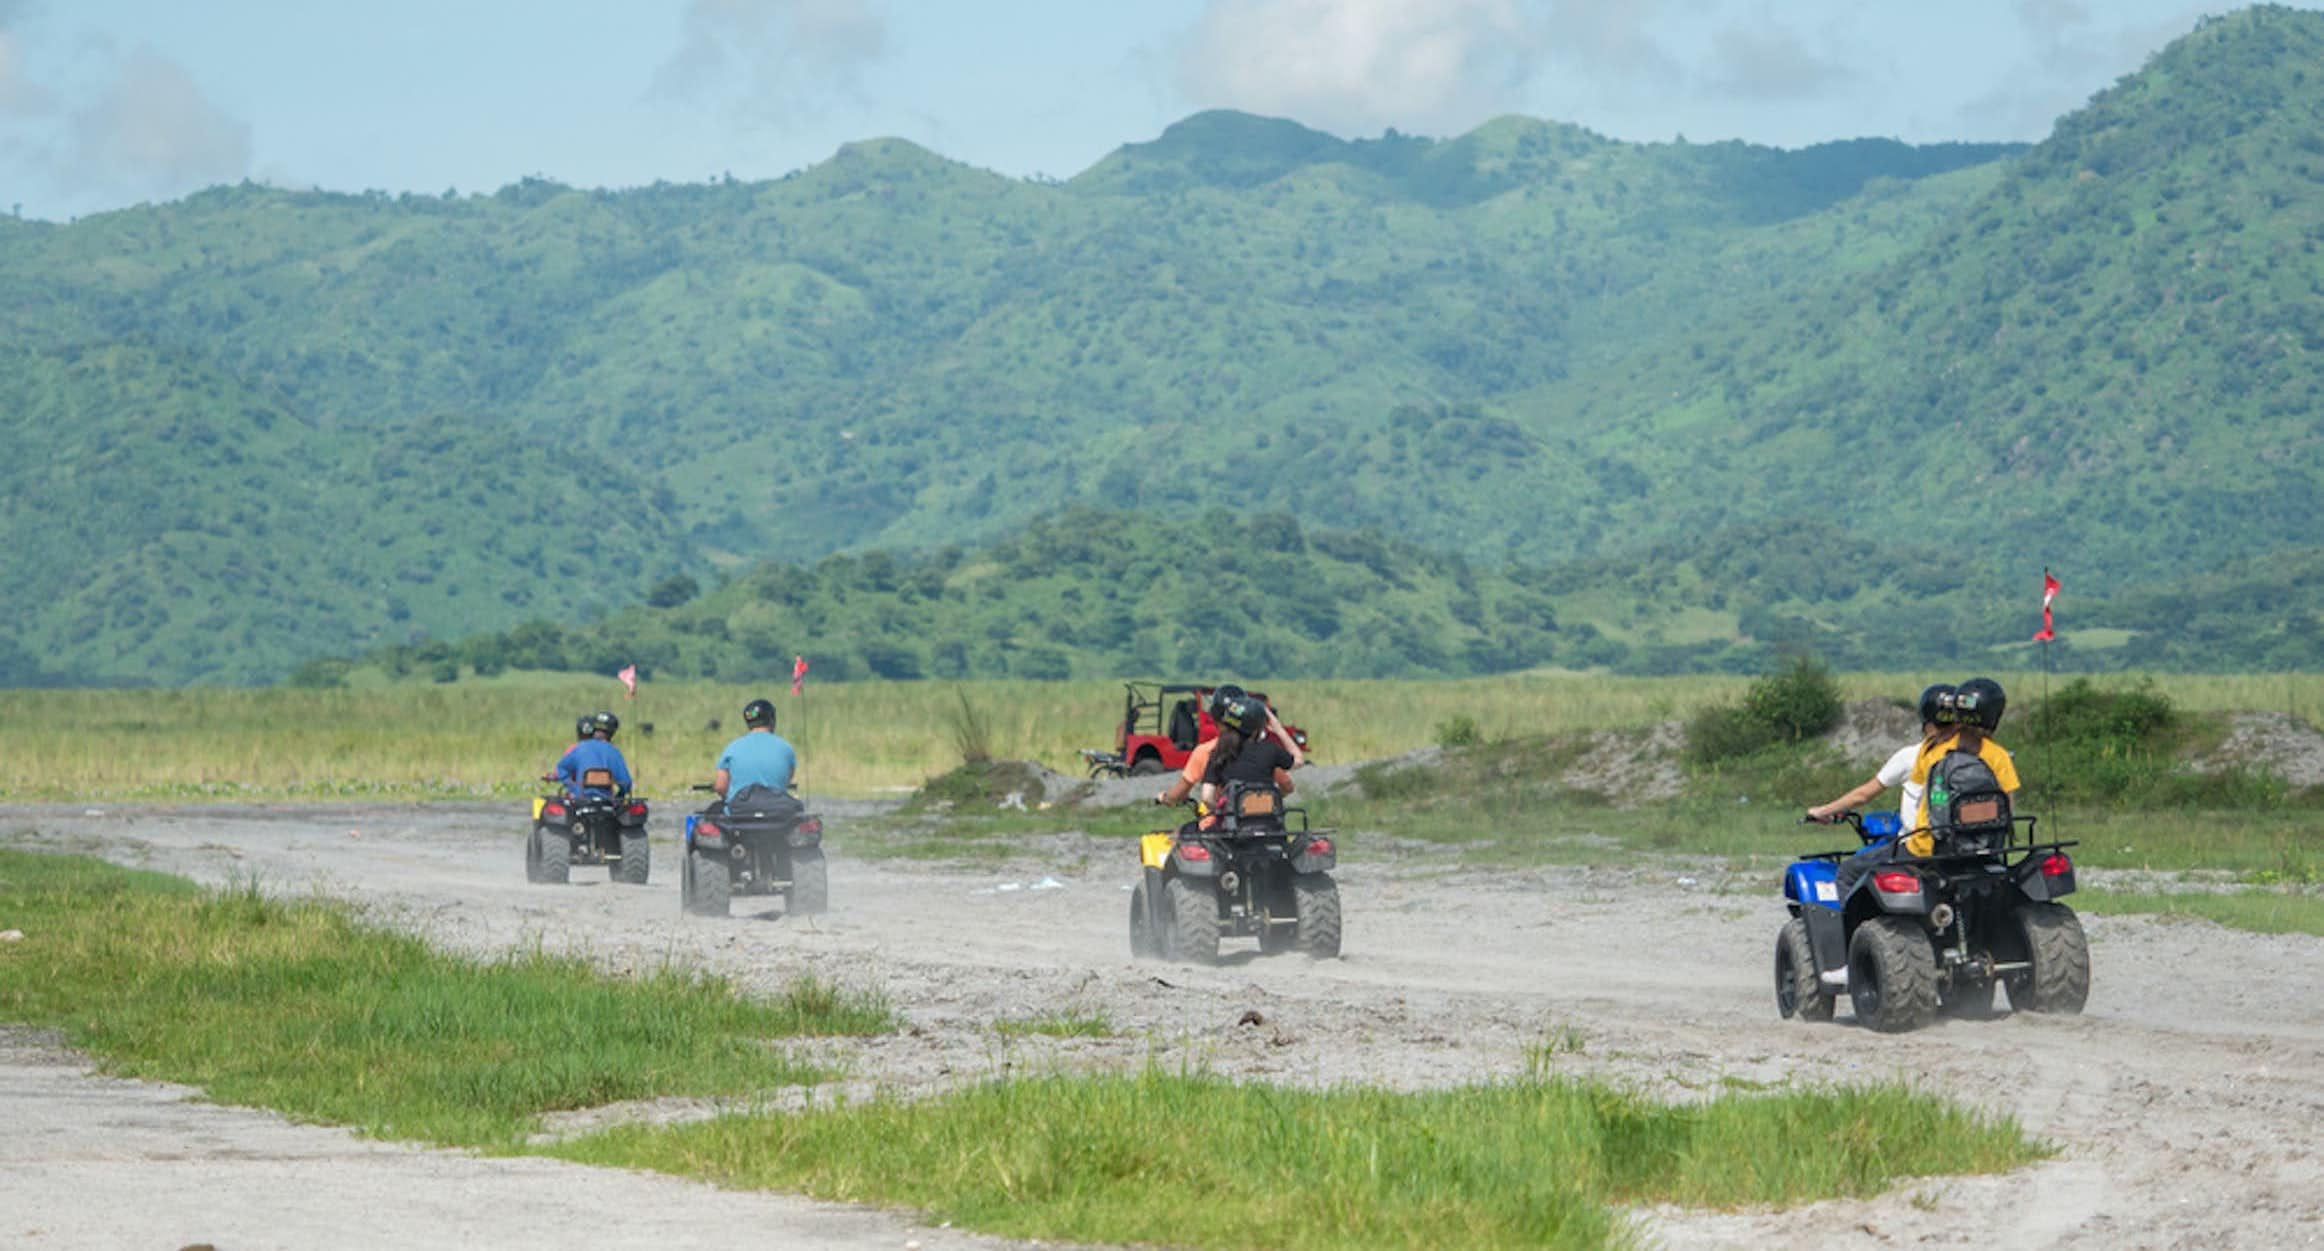 People riding the ATV in Mt. Pinatubo